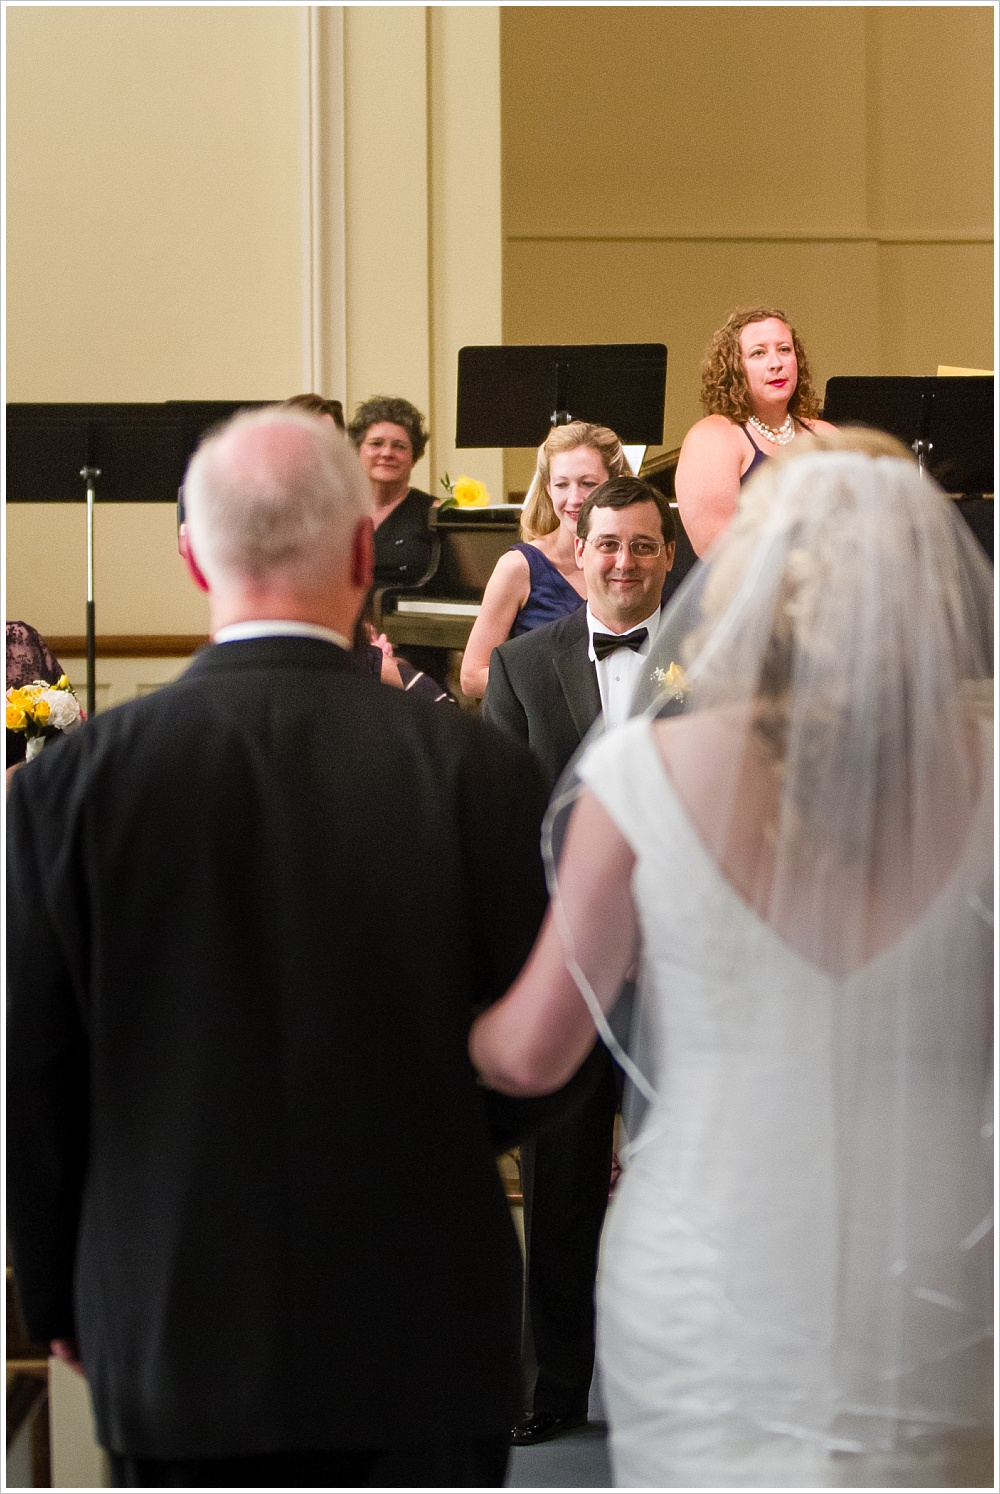 groom over bride's shoulder as she comes down the aisle | Calvary Baptist Church, Waco, TX | Jason & Melaina Photography